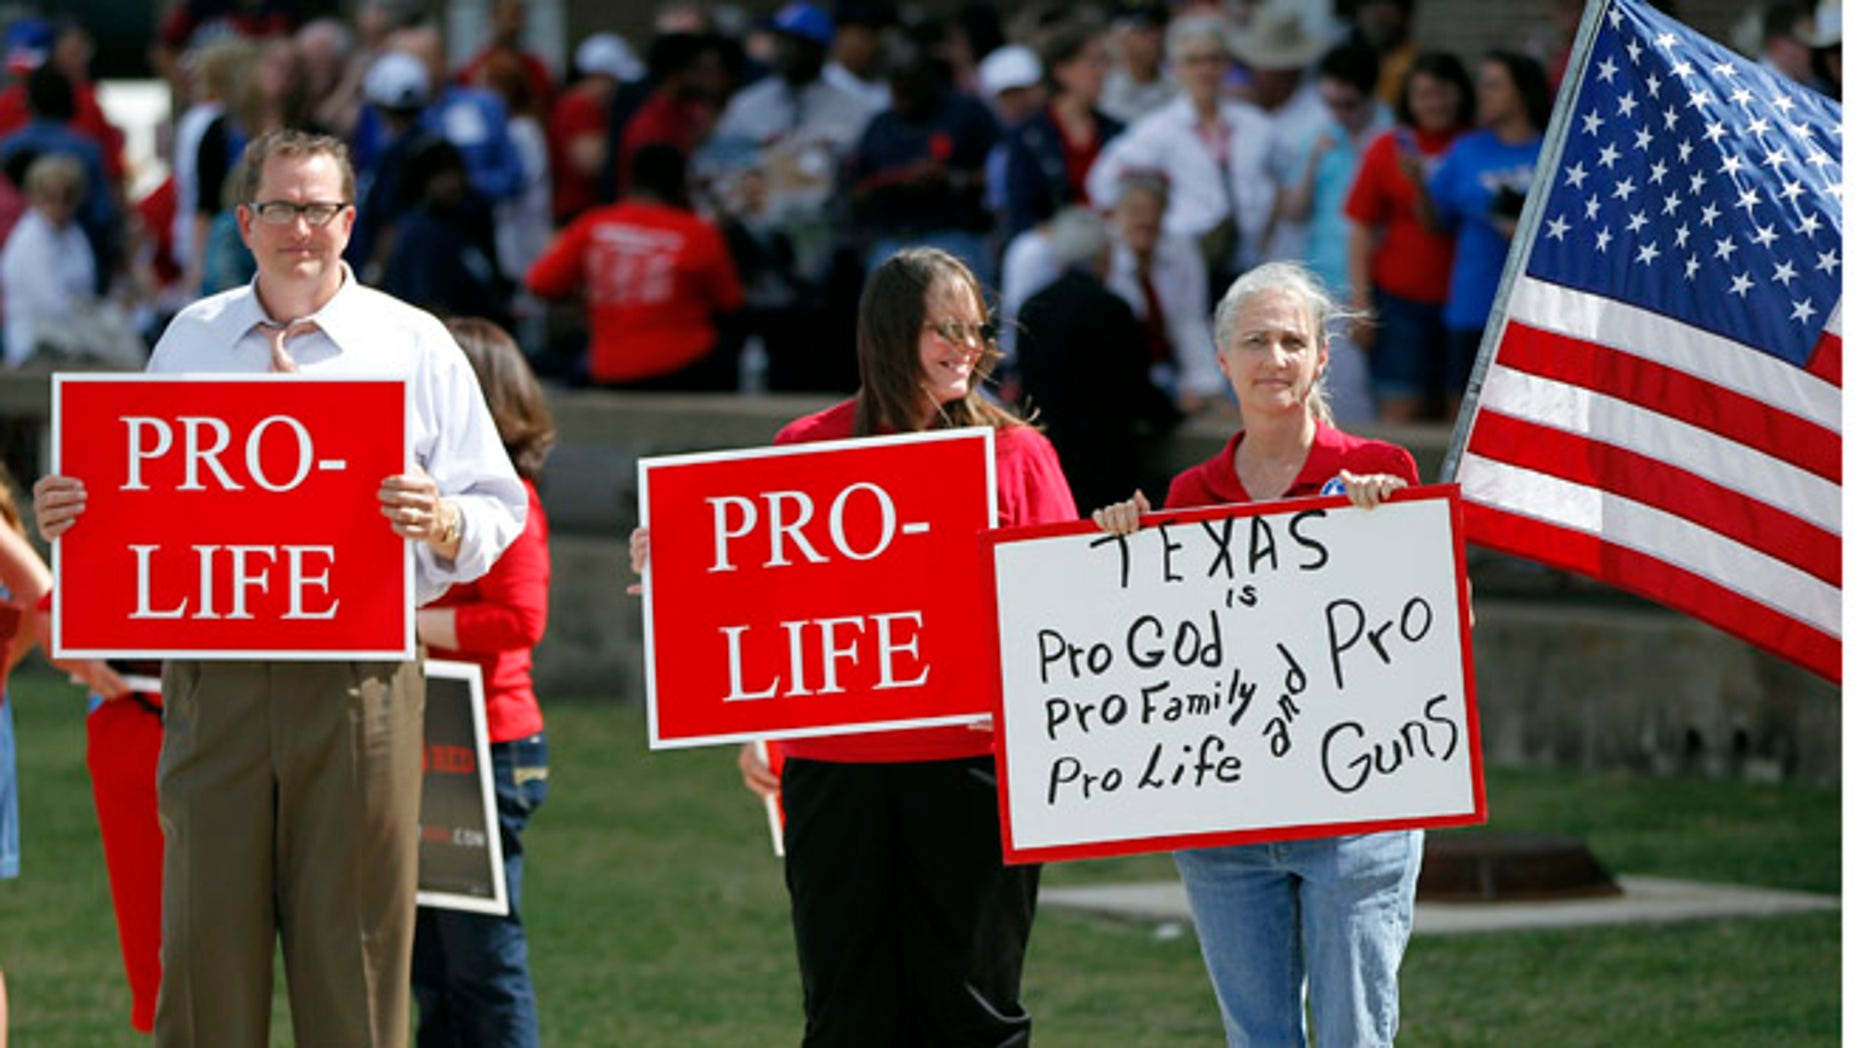 Oct.3 , 2013: Protesters gather outside W.G. Thomas Coliseum in Haltom City, Texas.